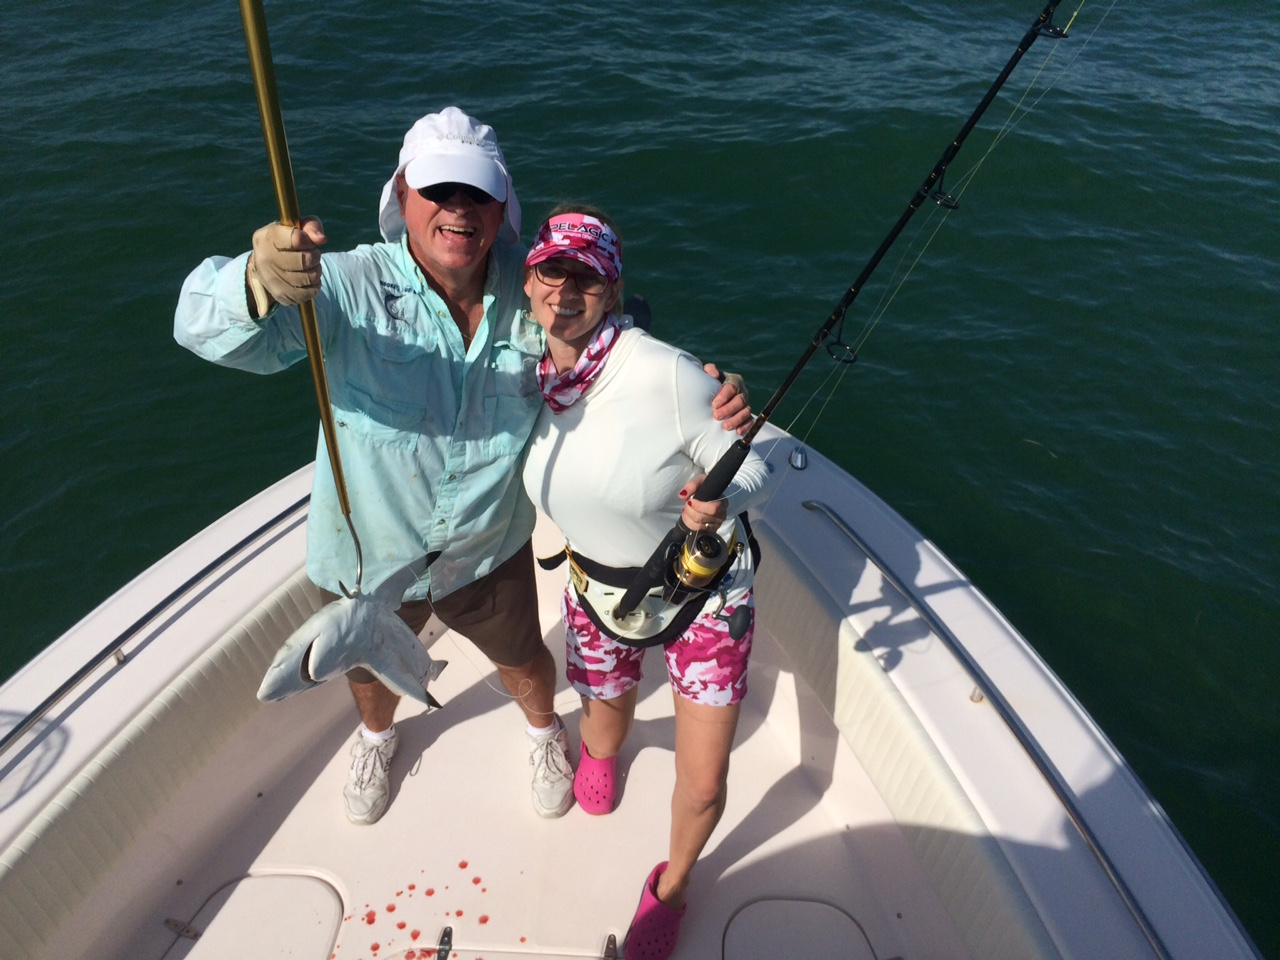 Melissa's first blacktip shark caught on a fishing charter off Marathon in the FL Keys.